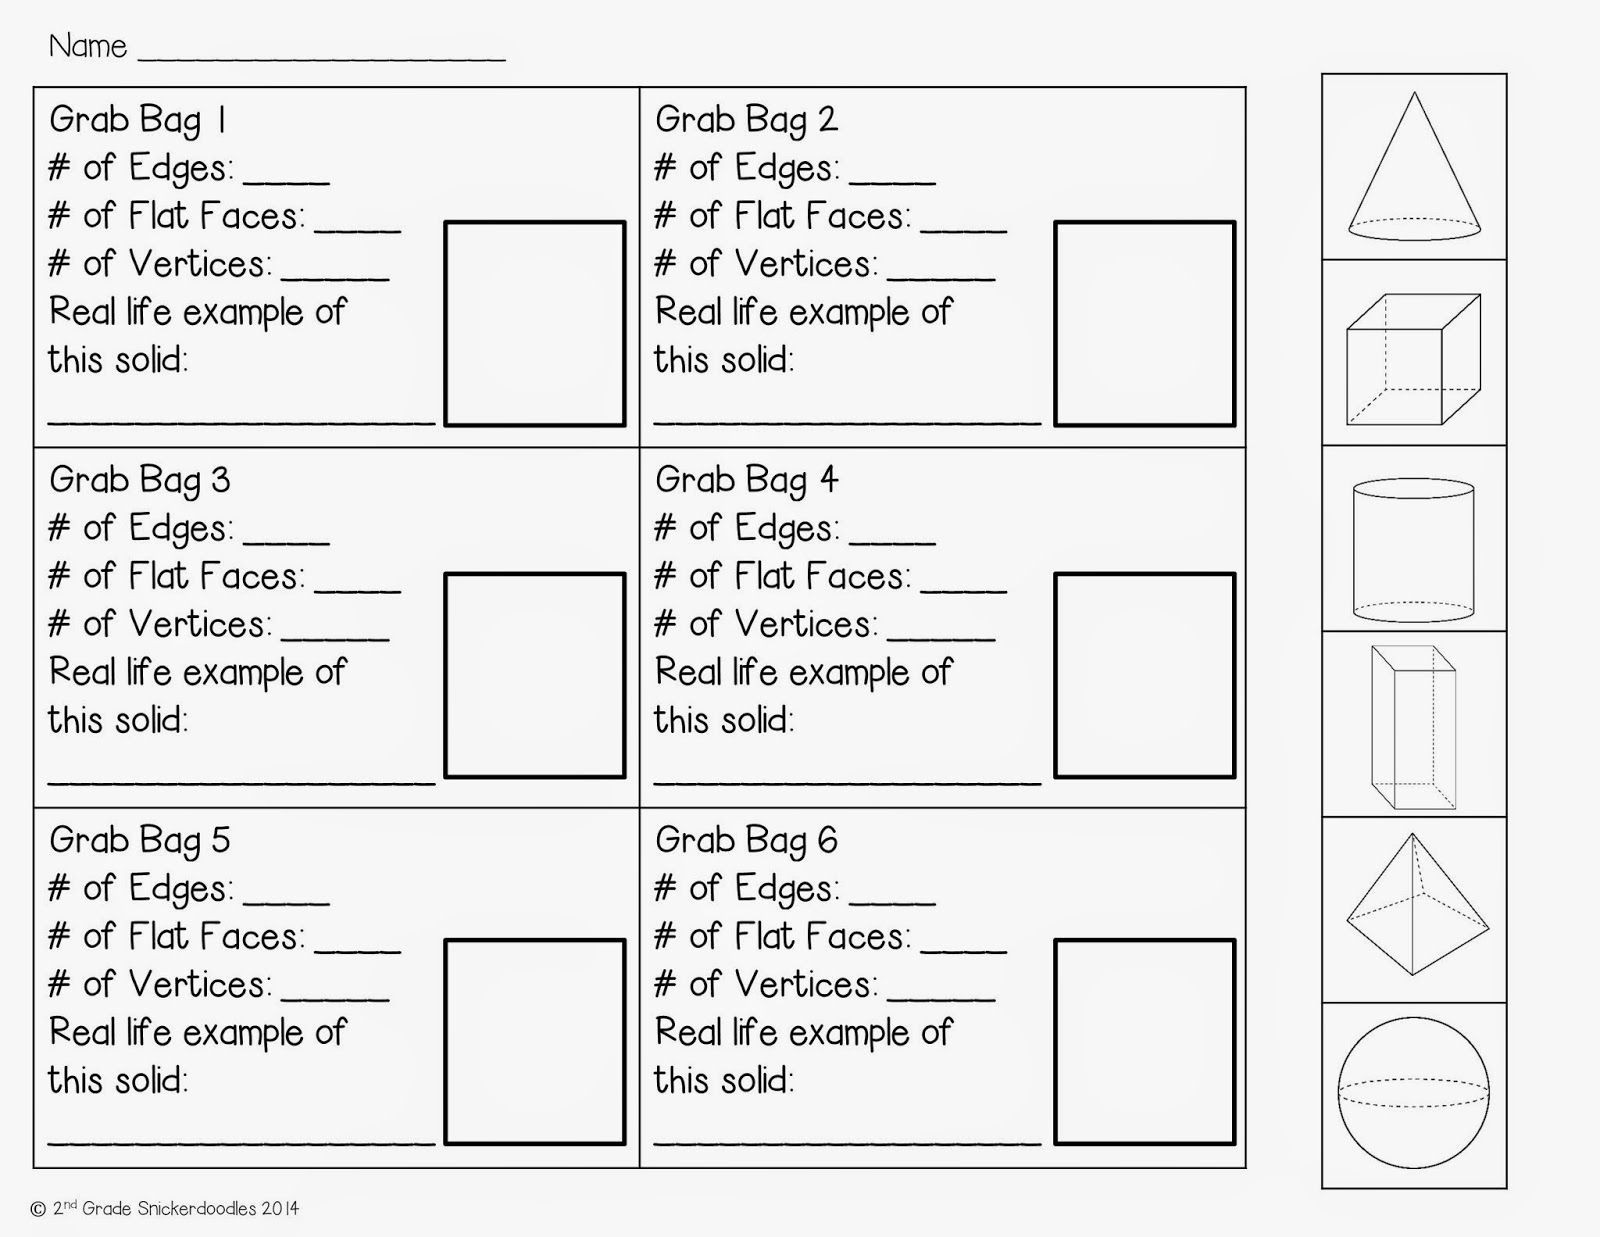 Geometry Worksheet 2nd Grade Geometric solids Grab Bag Activity